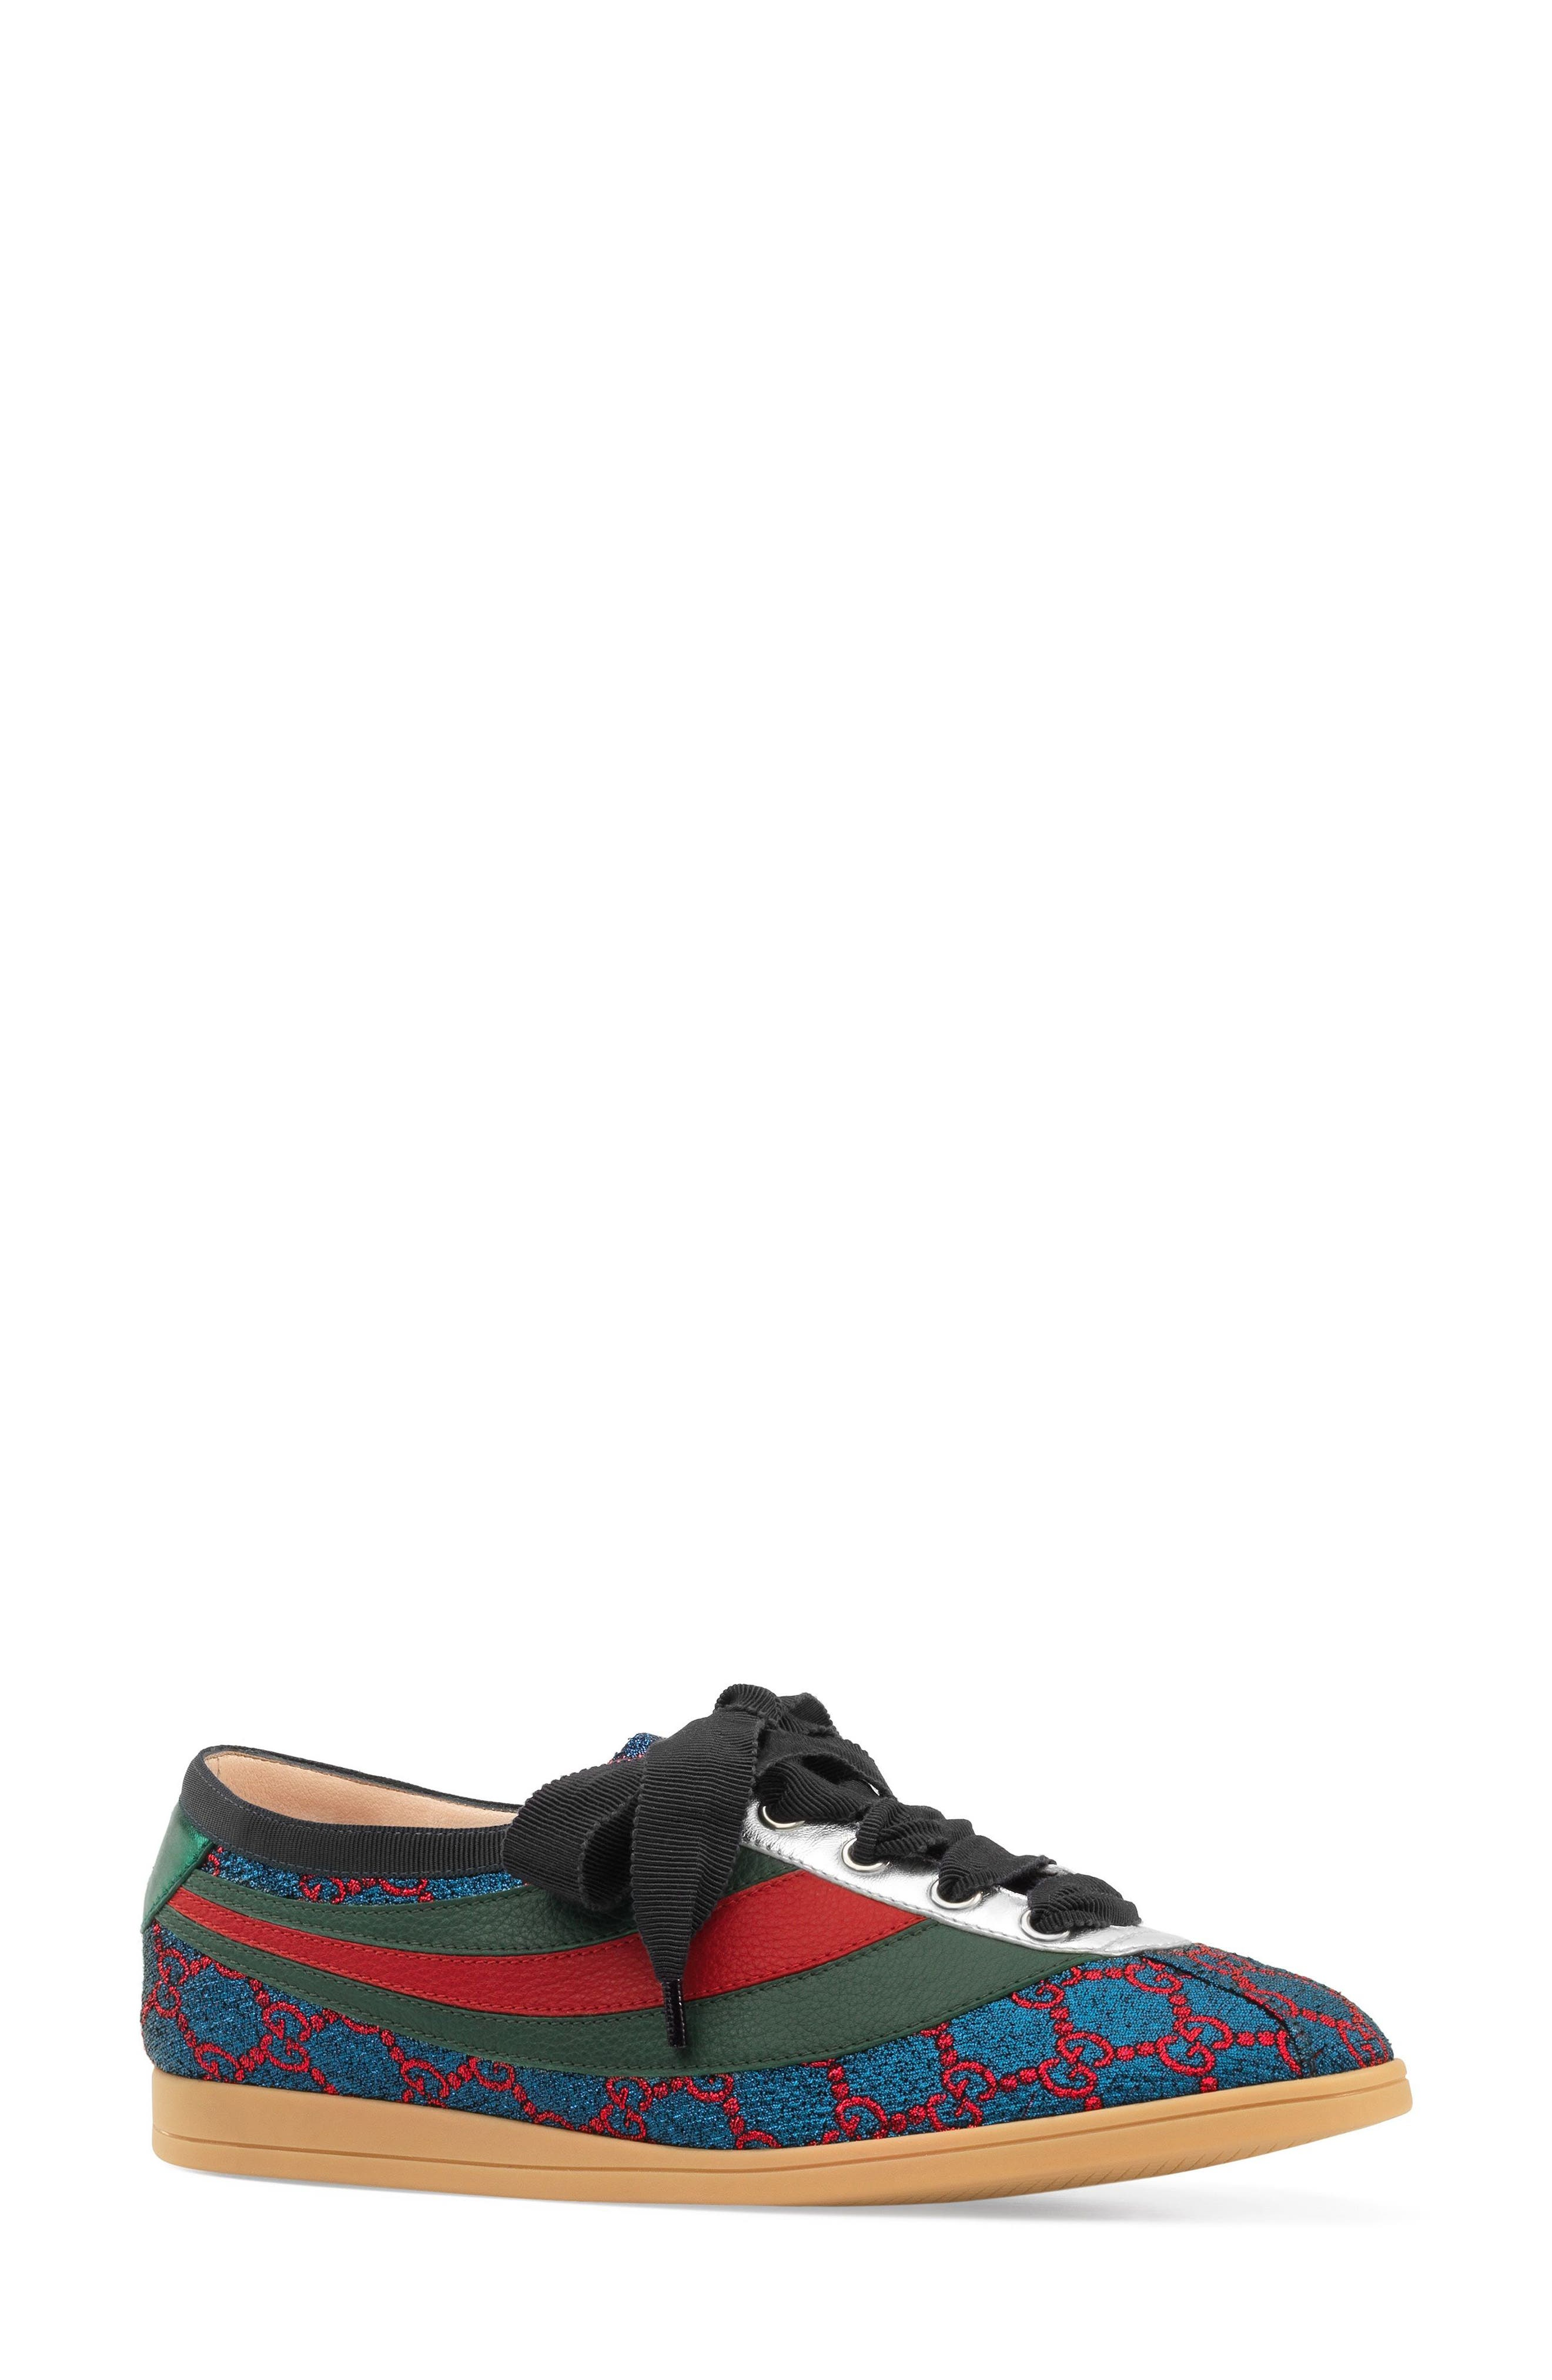 Gucci Competition Metallic GG Supreme Sneaker (Women)